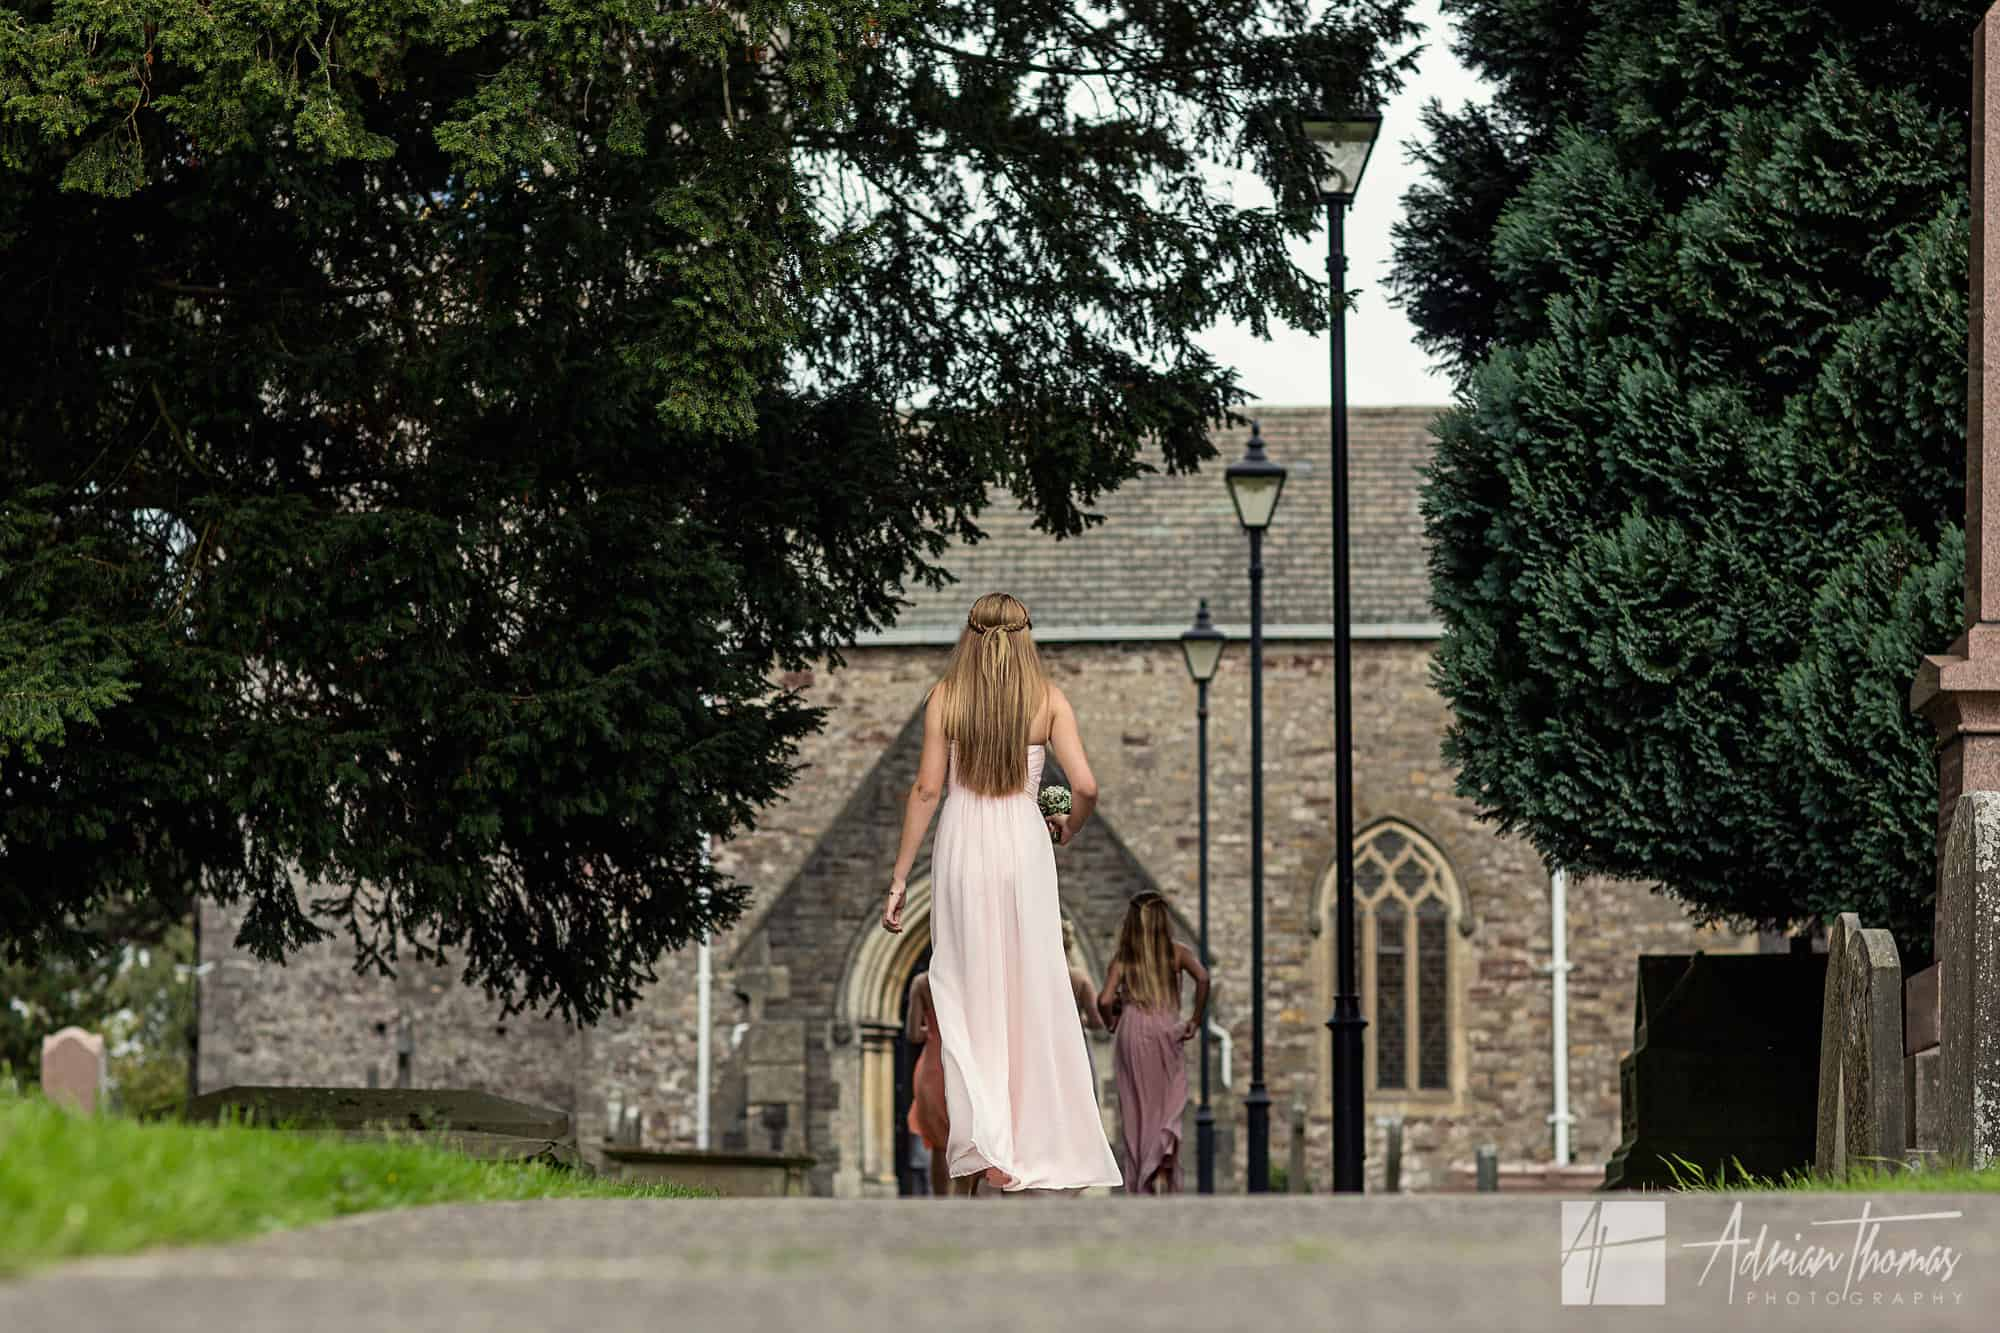 Bridesmaid walking down path at church.